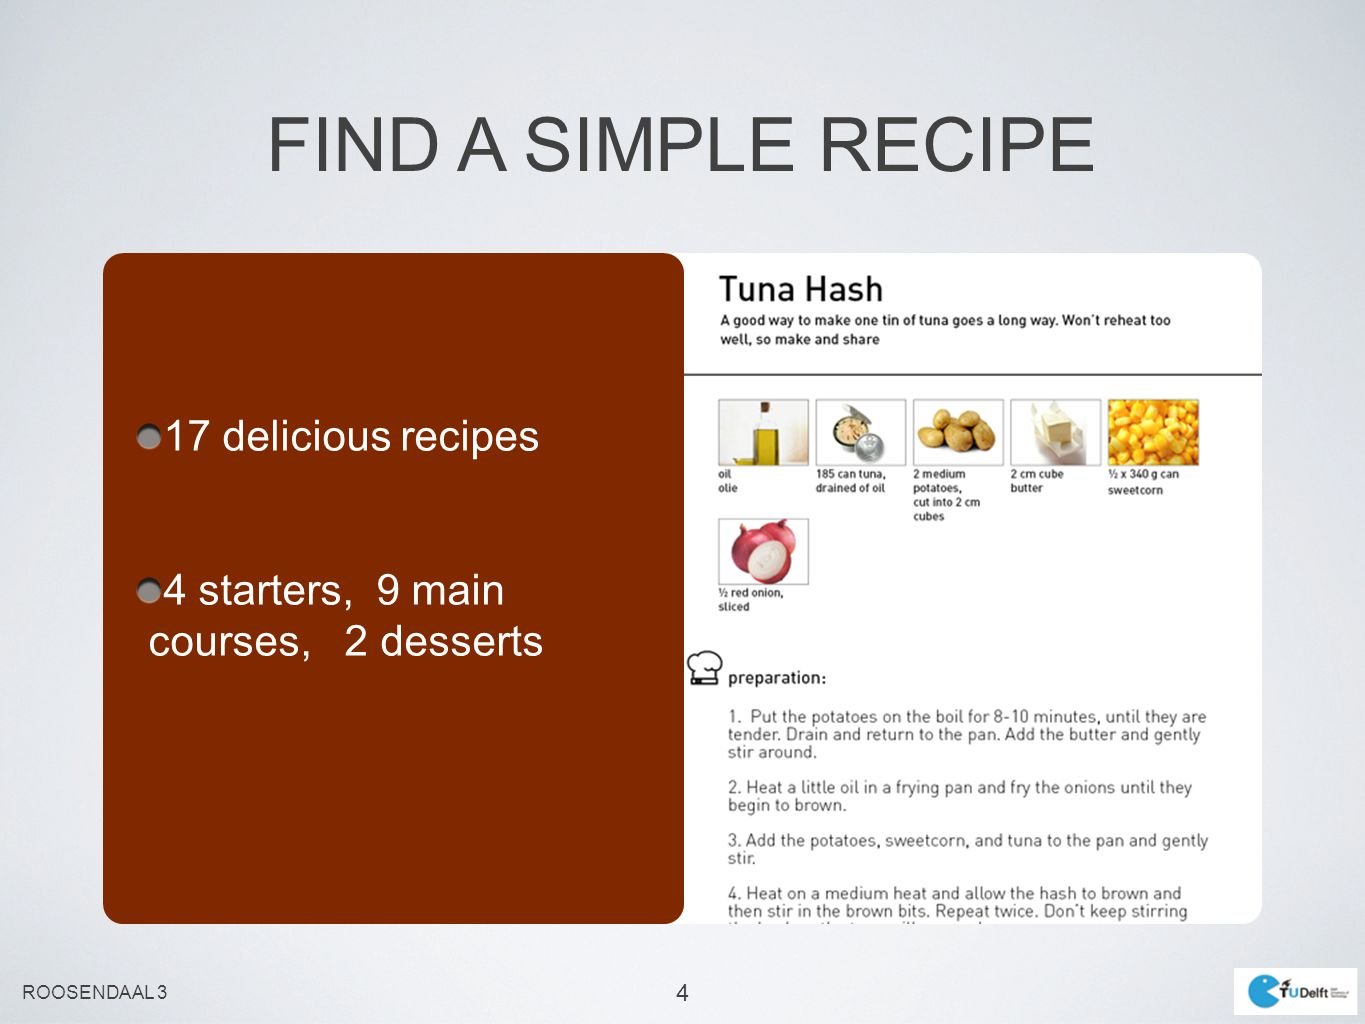 4 FIND A SIMPLE RECIPE 17 delicious recipes 4 starters, 9 main courses, 2 desserts ROOSENDAAL 3